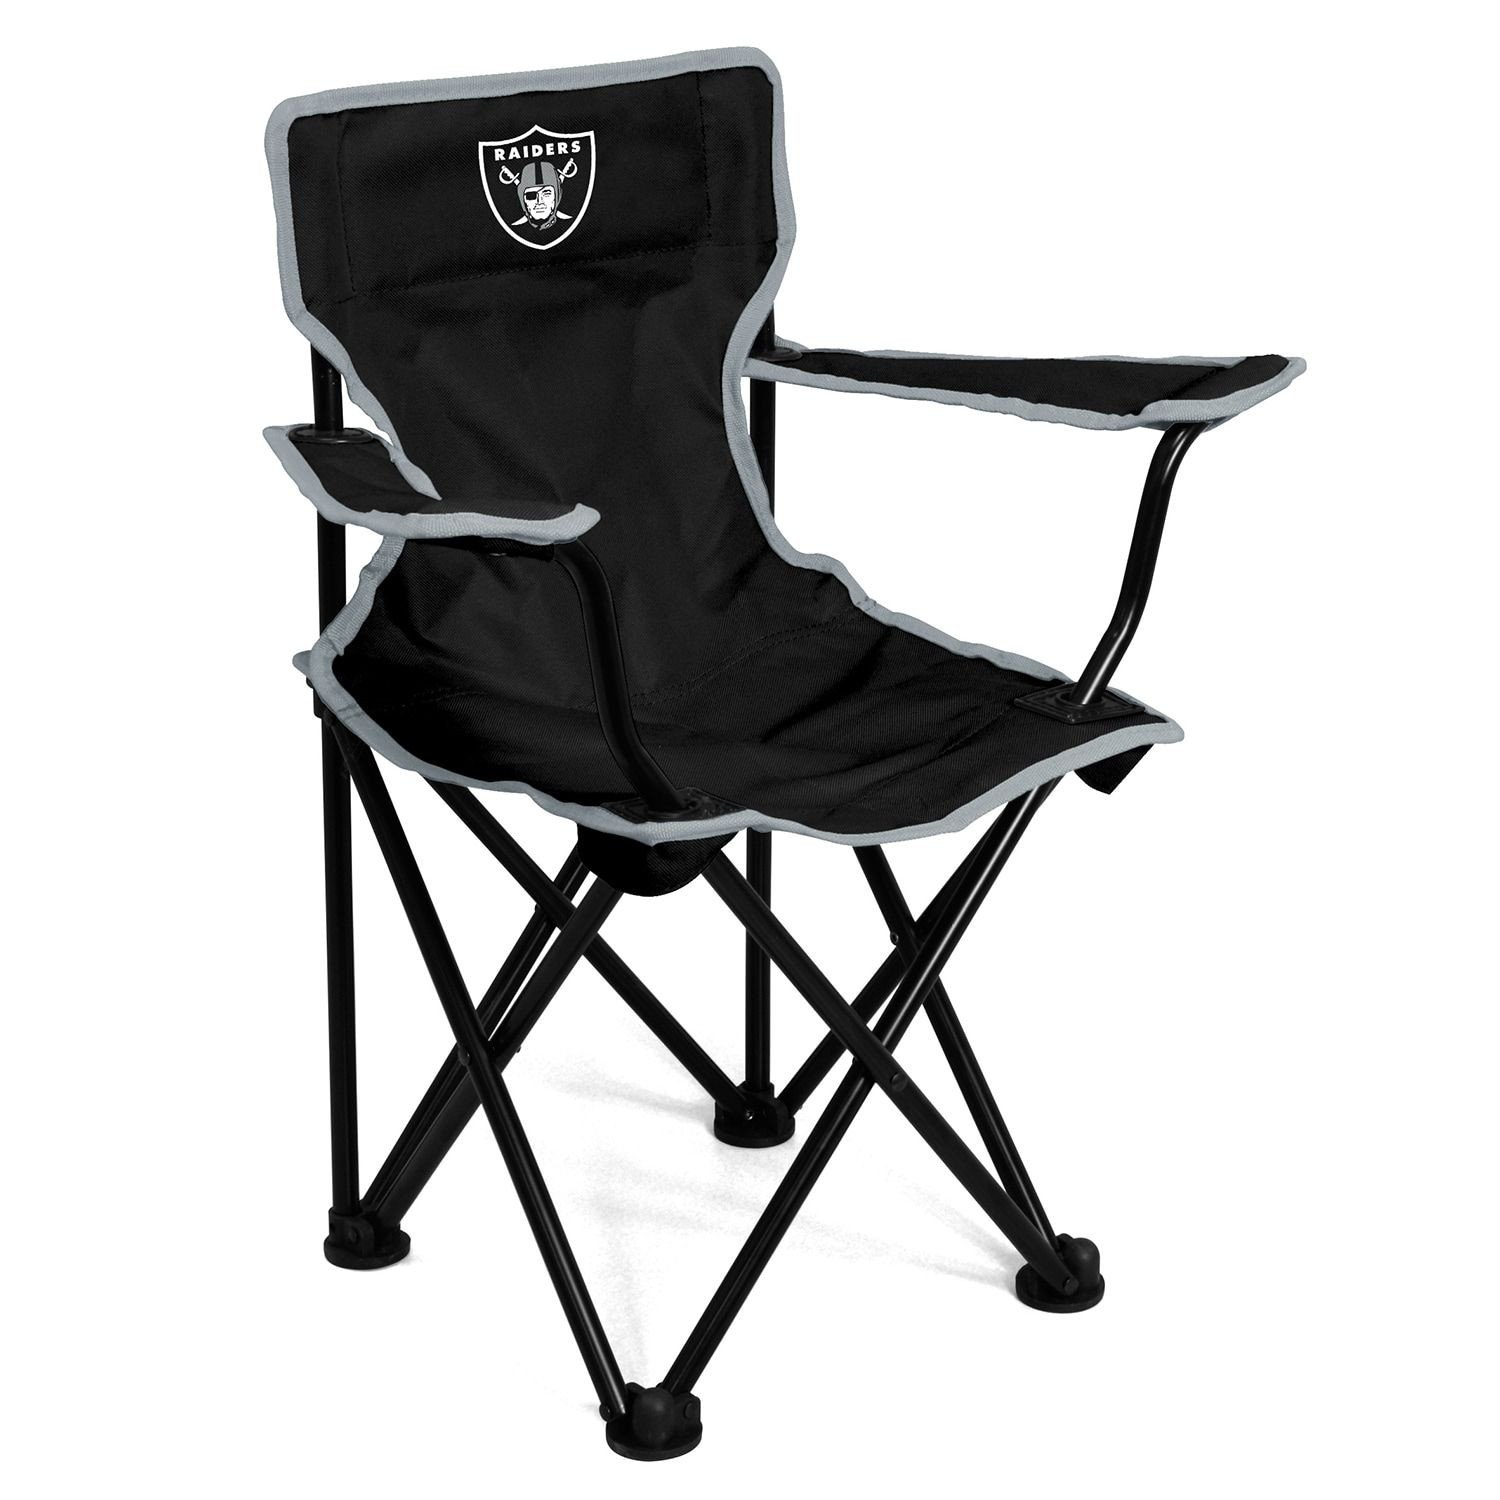 Oakland Raiders Bedroom Set Elegant Logo Brands Oakland Raiders toddler Portable Folding Chair